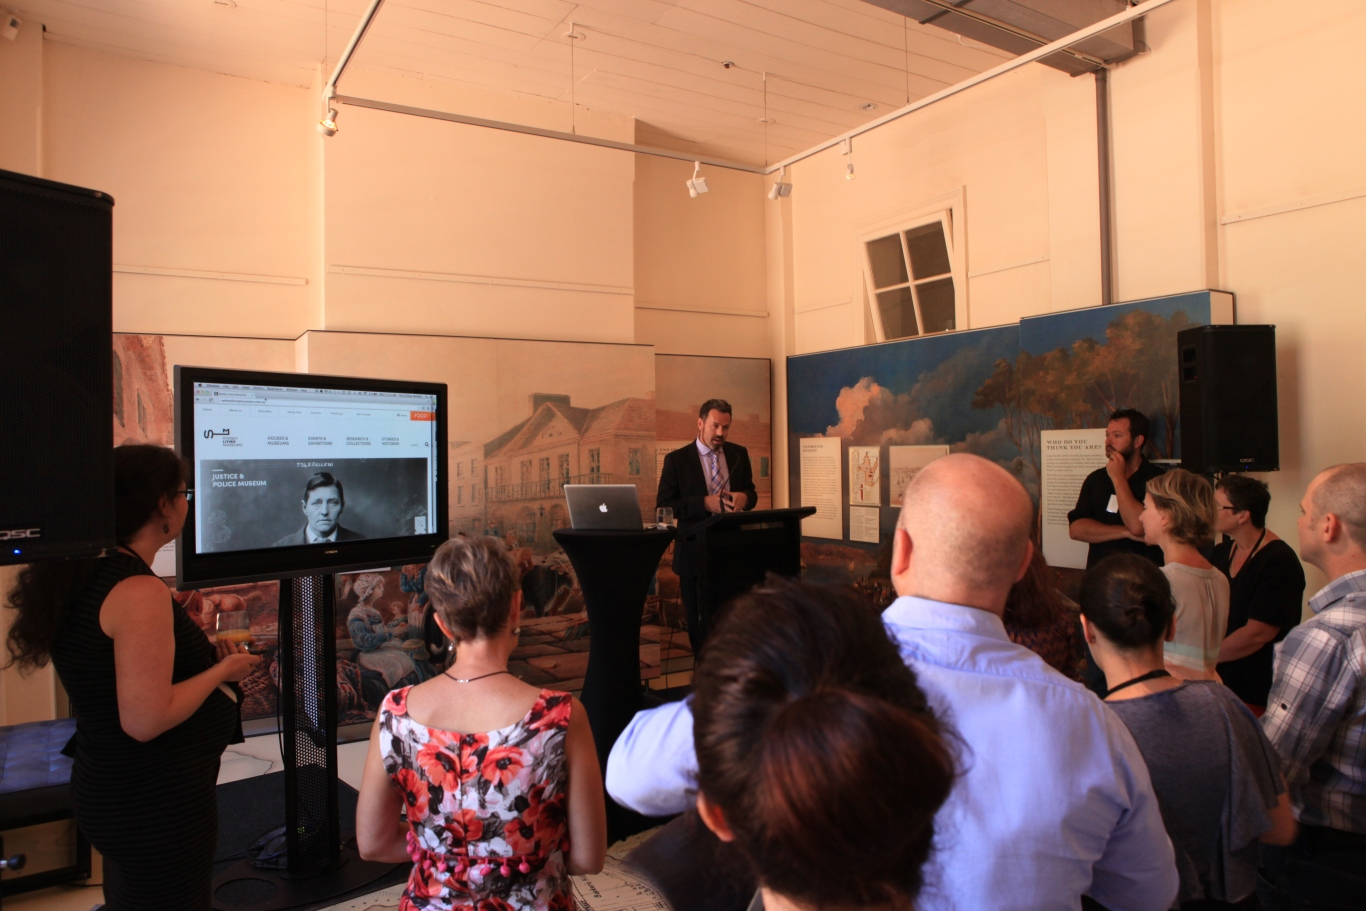 Photo showing SLM director Mark Goggin speaking to a crowd of people. He is standing on a podium with a large screen showing the website to his right.